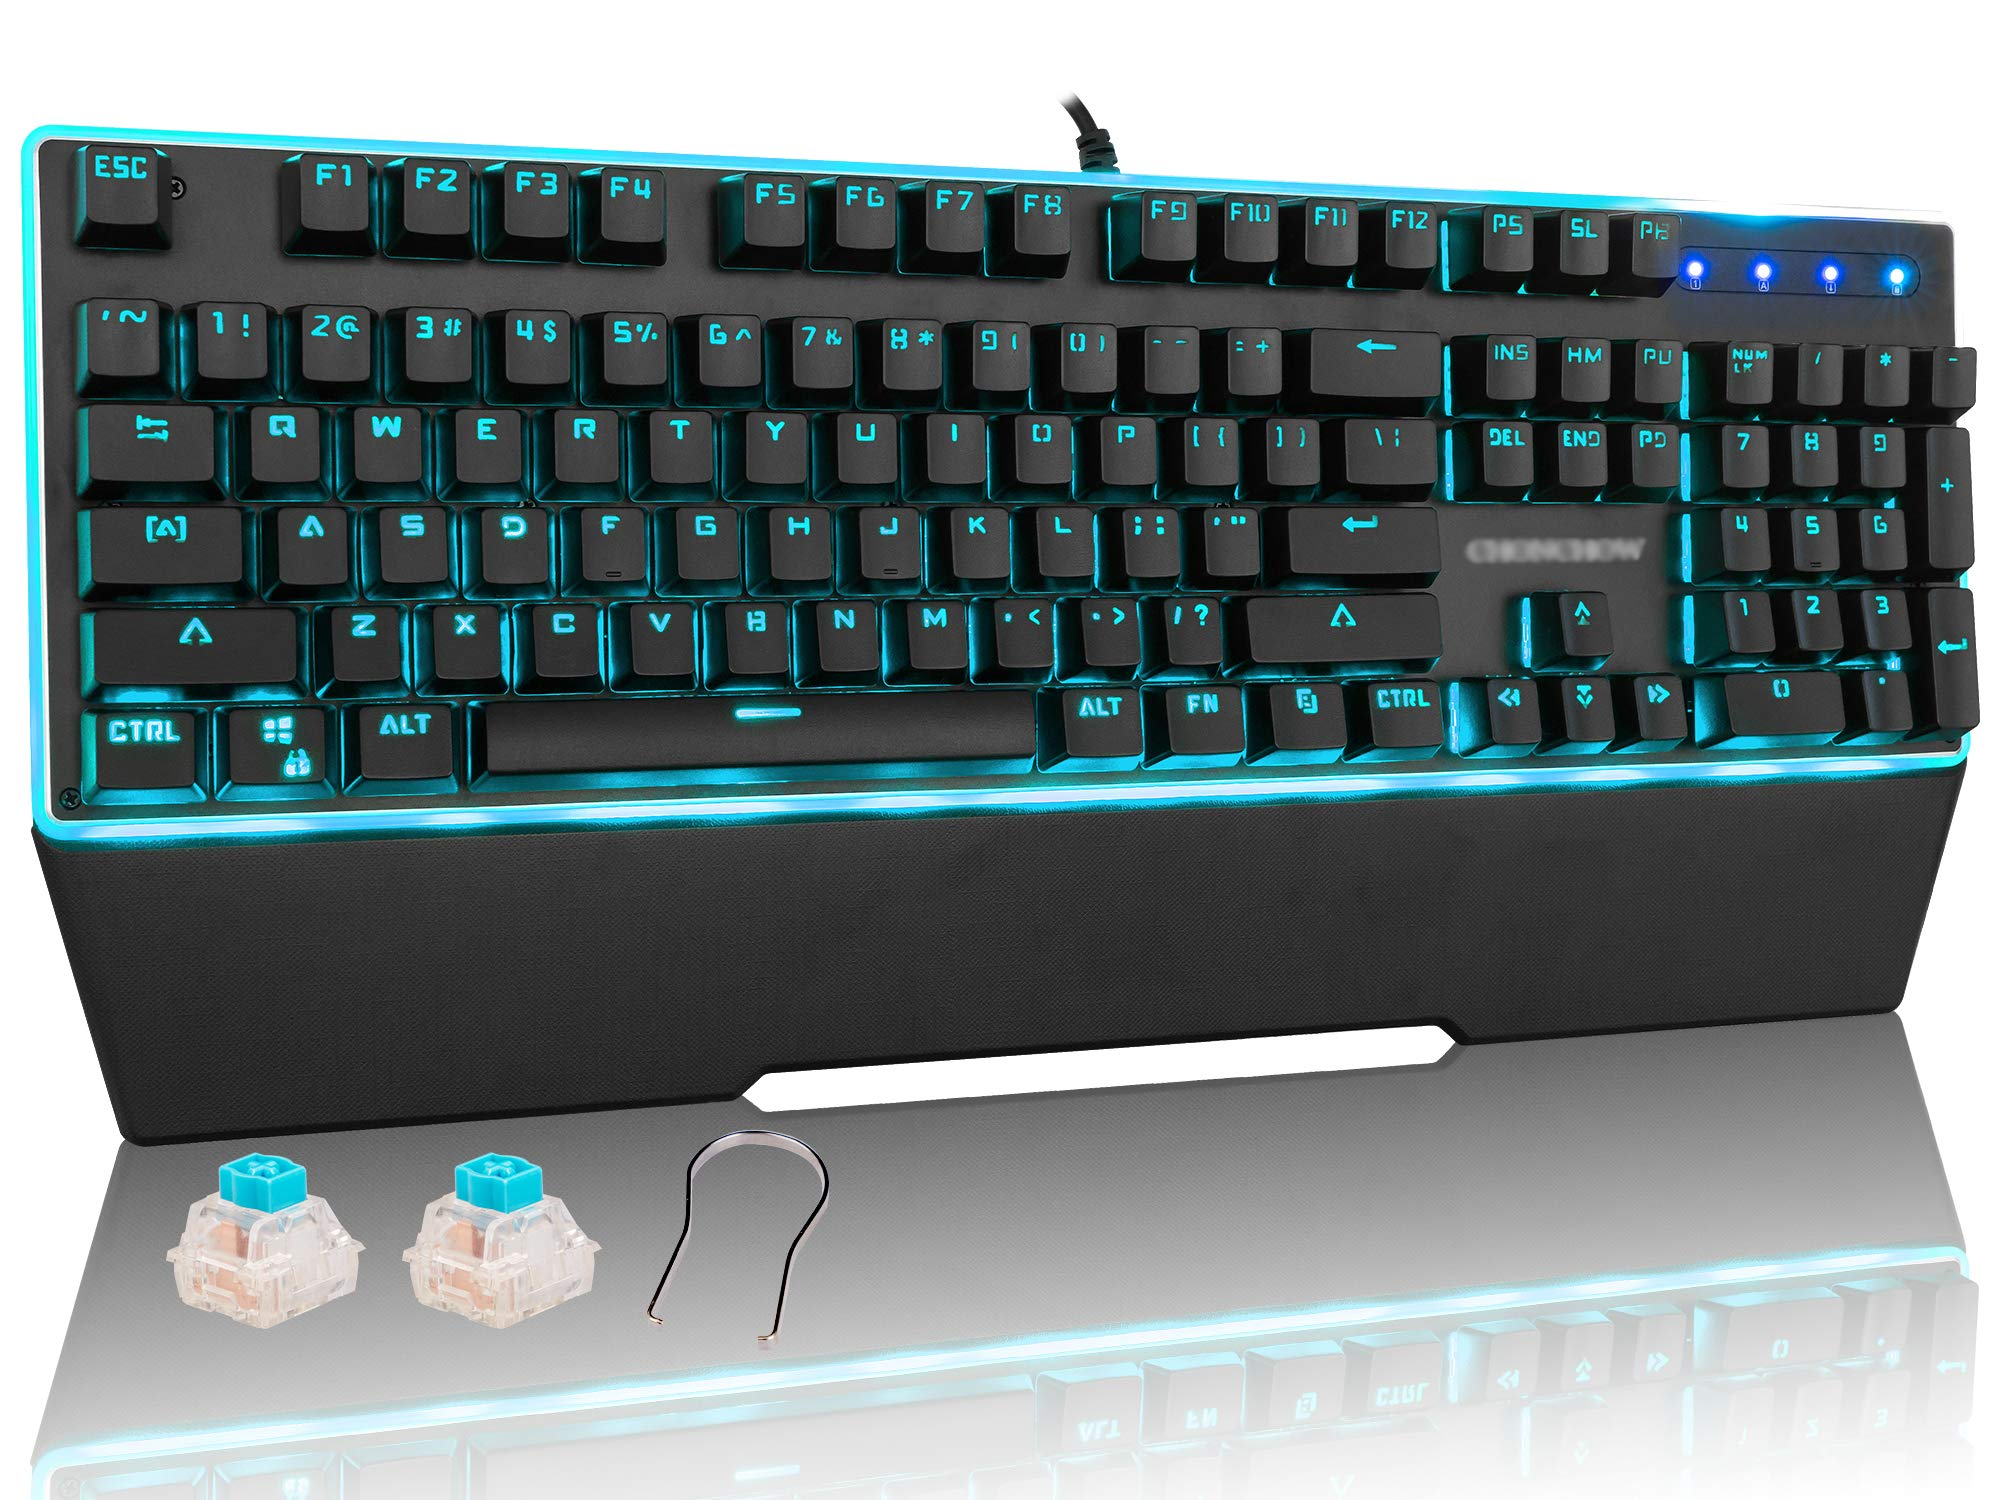 CHONCHOW RGB Blue Switch Mechanical Gaming Keyboard Electric Response 26 Keys Anti-ghosting USB Wired LED Backlit Keyboard Compatible with PC PS4 Mac Xbox - Black by CHONCHOW